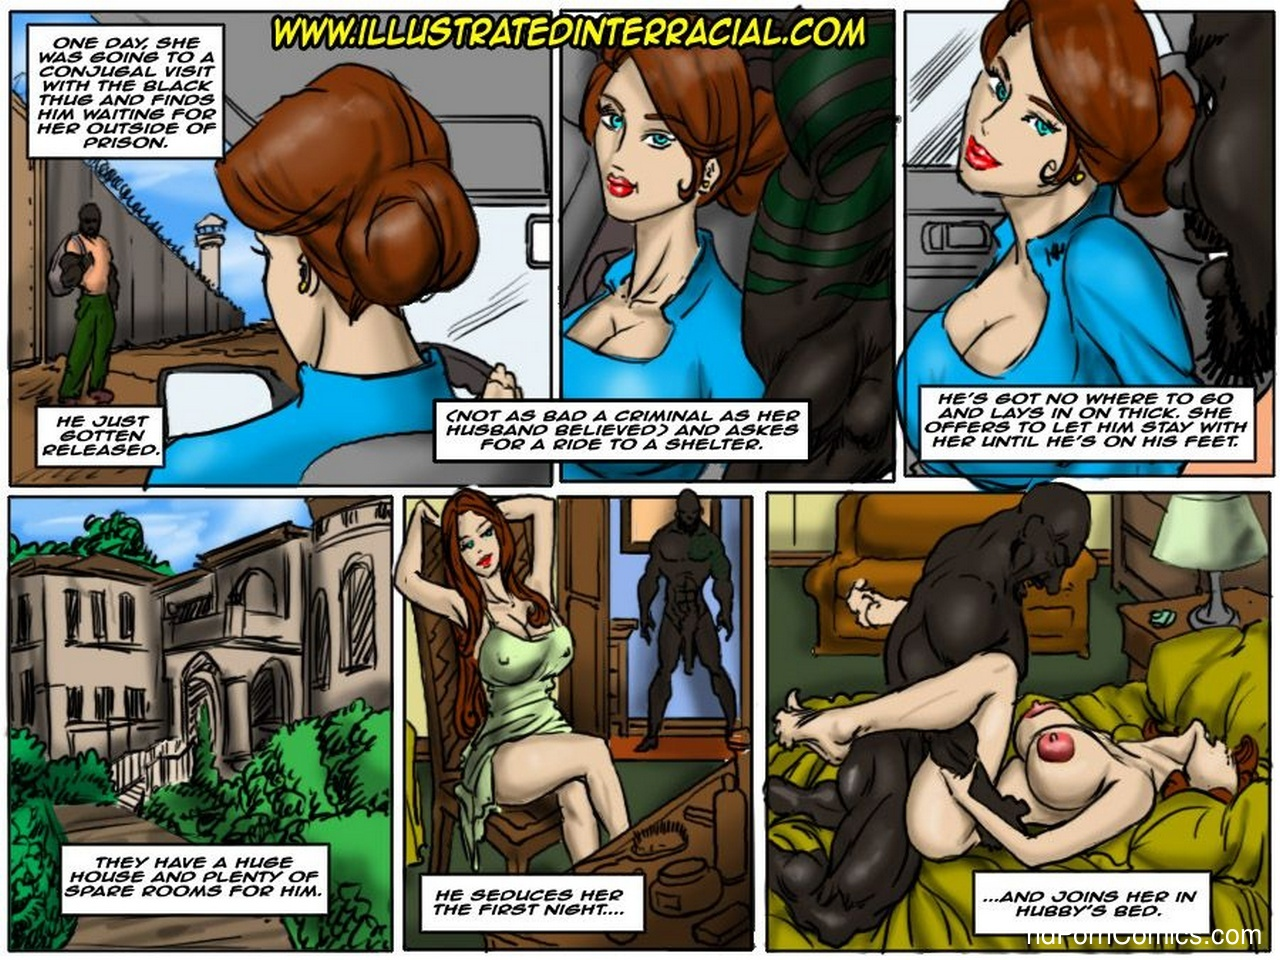 Wife-Gets-Pounded-While-Husband-s-Impounded14 free sex comic